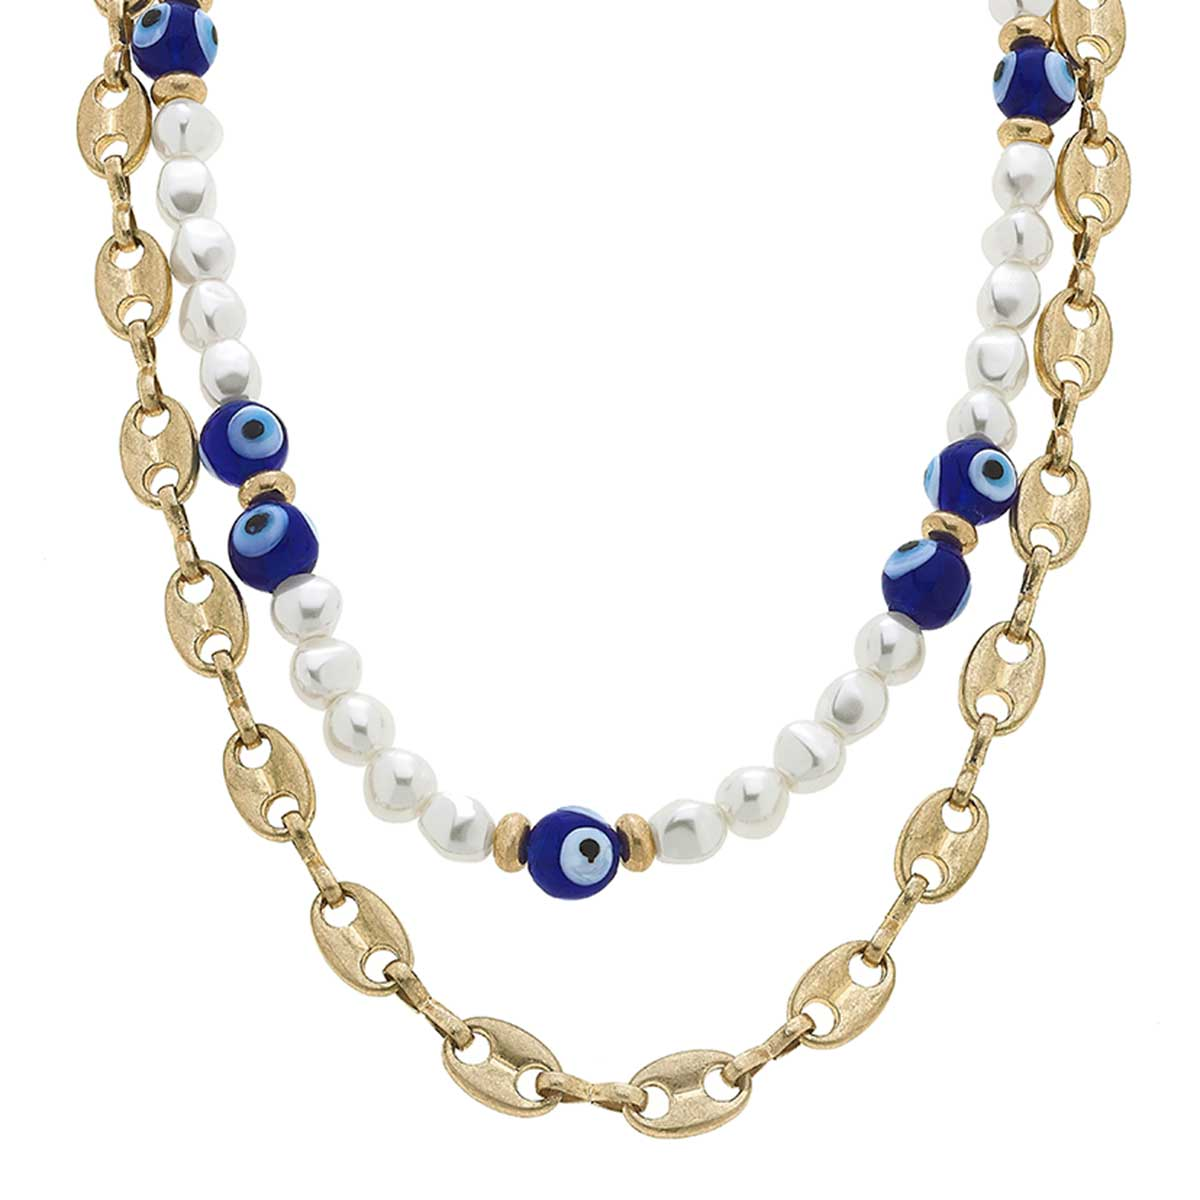 Murano Glass Evil Eye & Pearl Layered Talisman Necklace in Blue & White